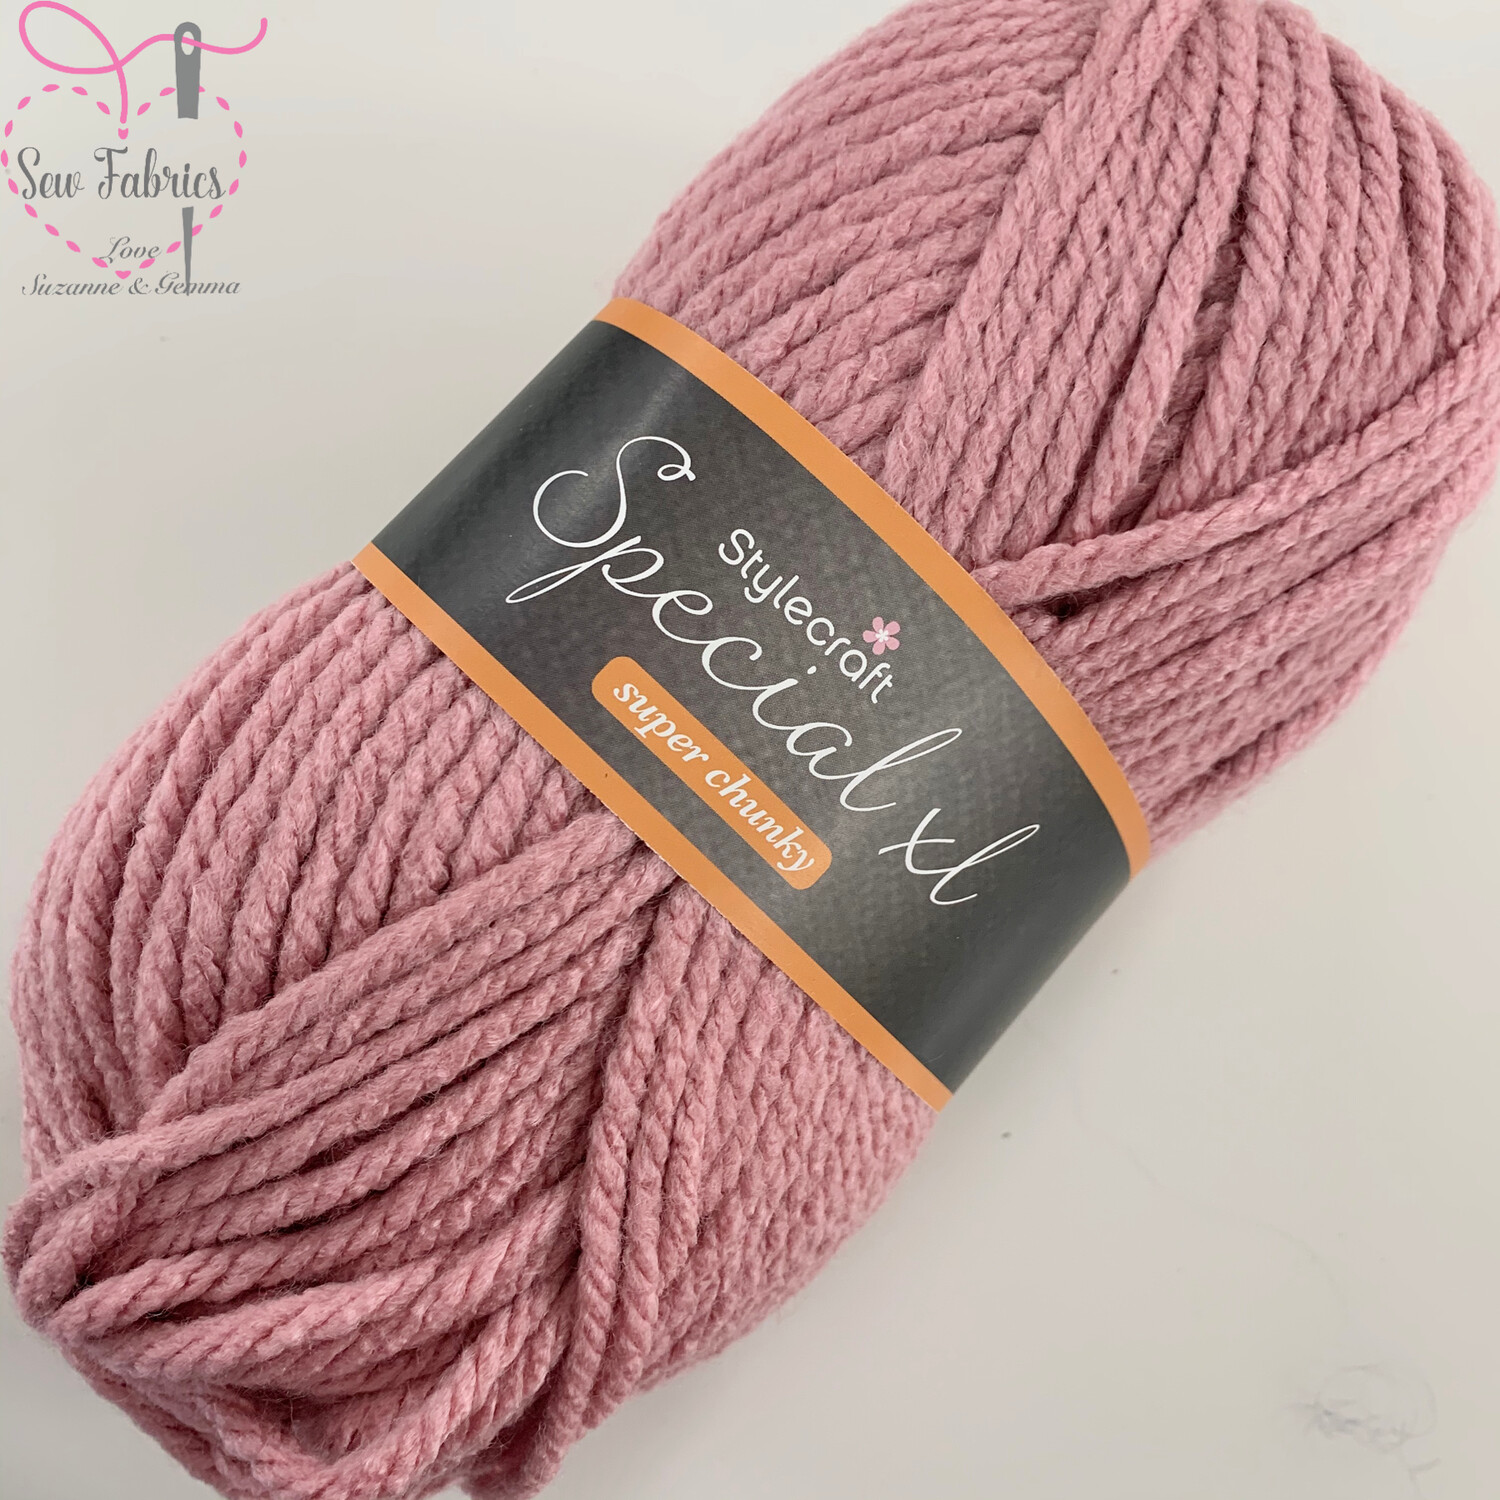 Stylecraft Special XL Super Chunky 100% Premium Acrylic Wool - Pale Rose  Buy More Than 1 Ball & Get 30% Off With Code STYLE30